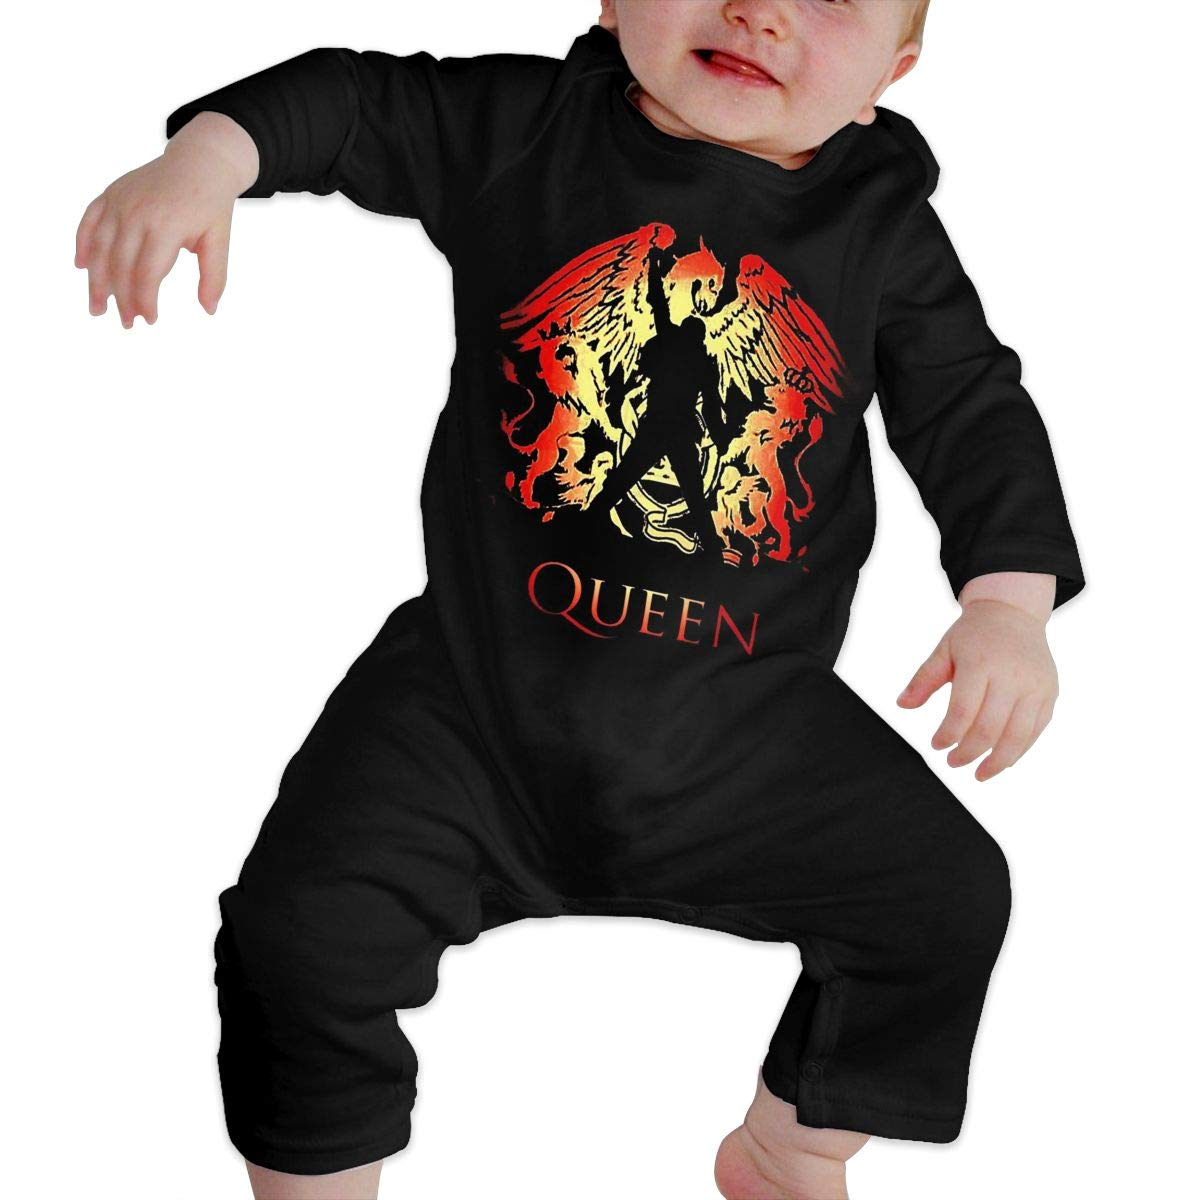 SOFIEYA Queen Band Kids Baby Unisex Cotton Cute Long Sleeve Hooded Romper Jumpsuit Baby Crawler Clothes Black